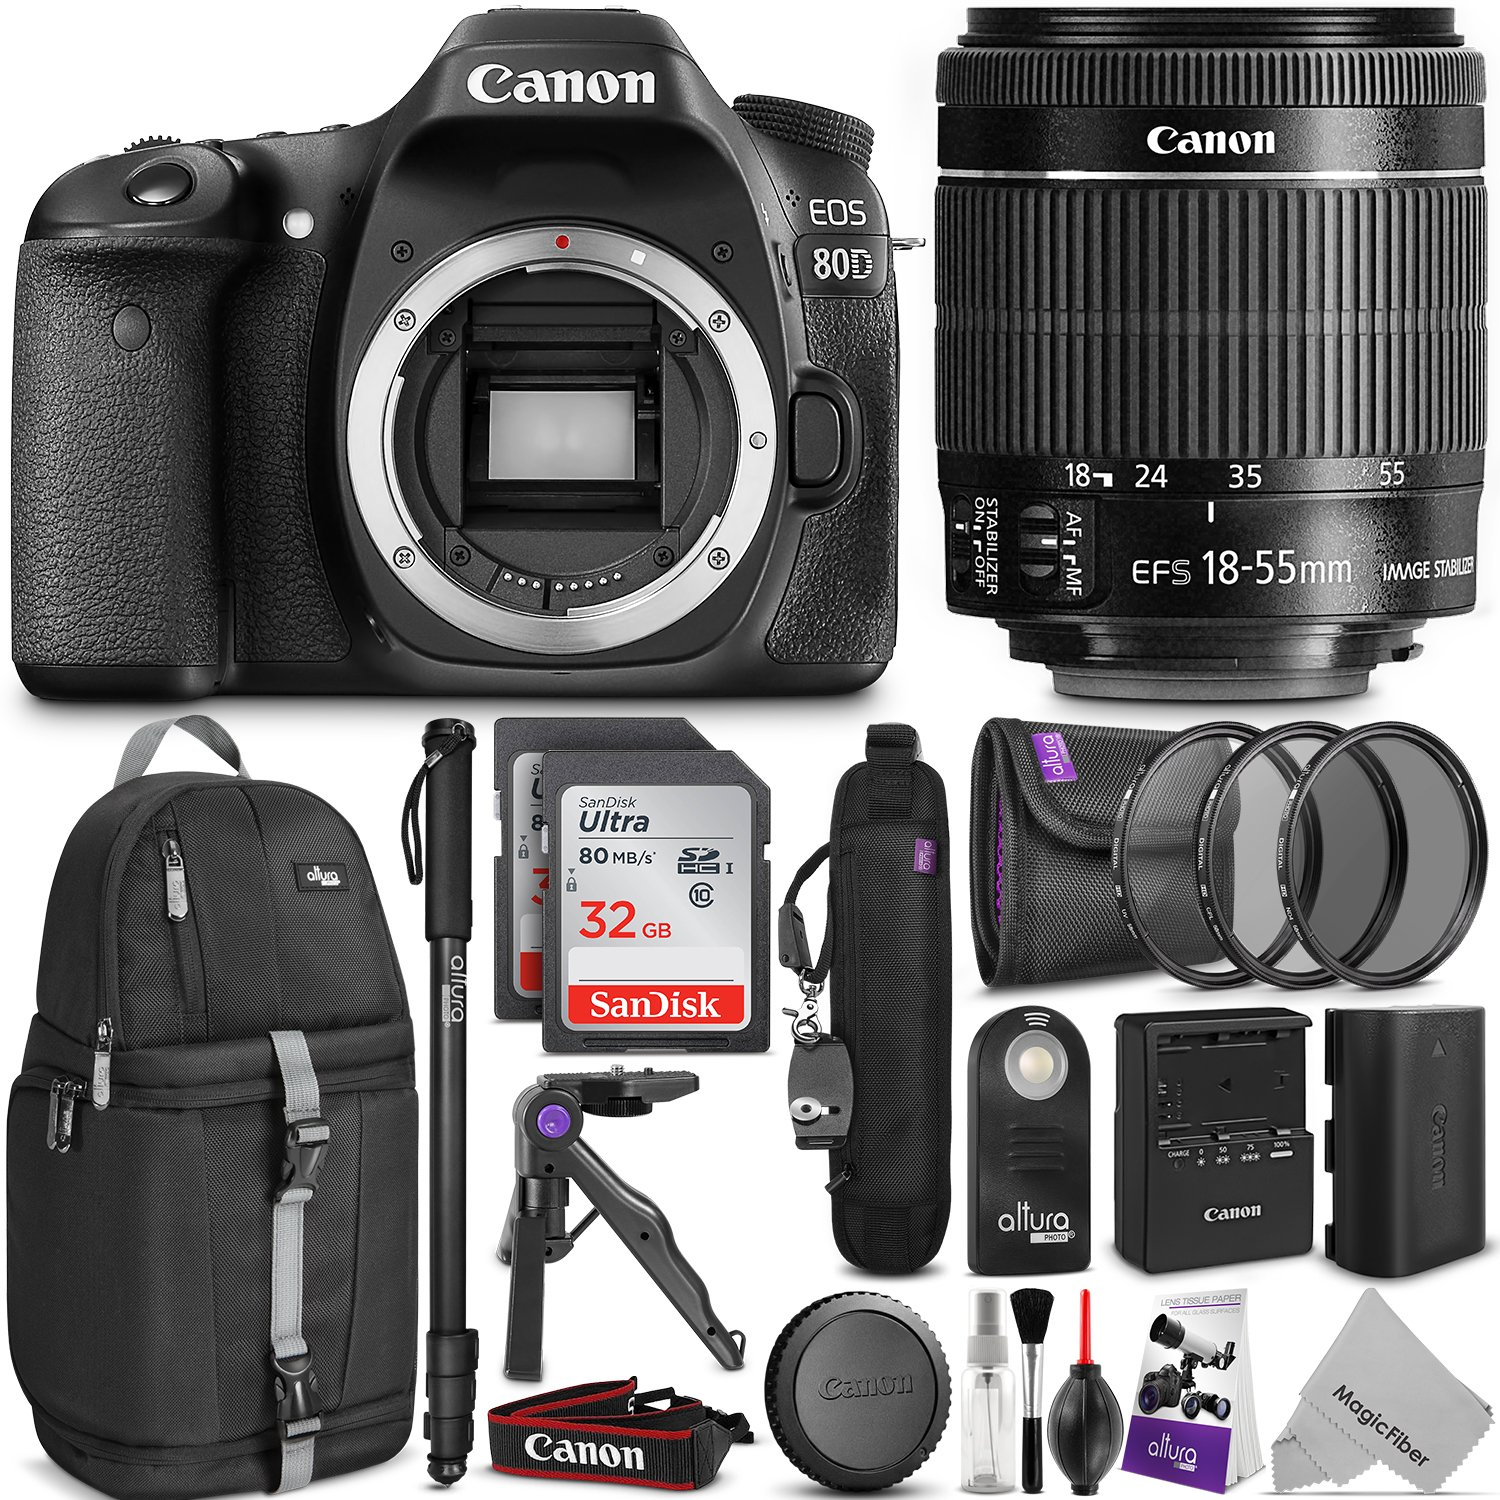 Canon EOS 80D DSLR Camera with EF-S 18-55mm f/3.5-5.6 IS STM Lens w/ Complete Photo and Travel Bundle